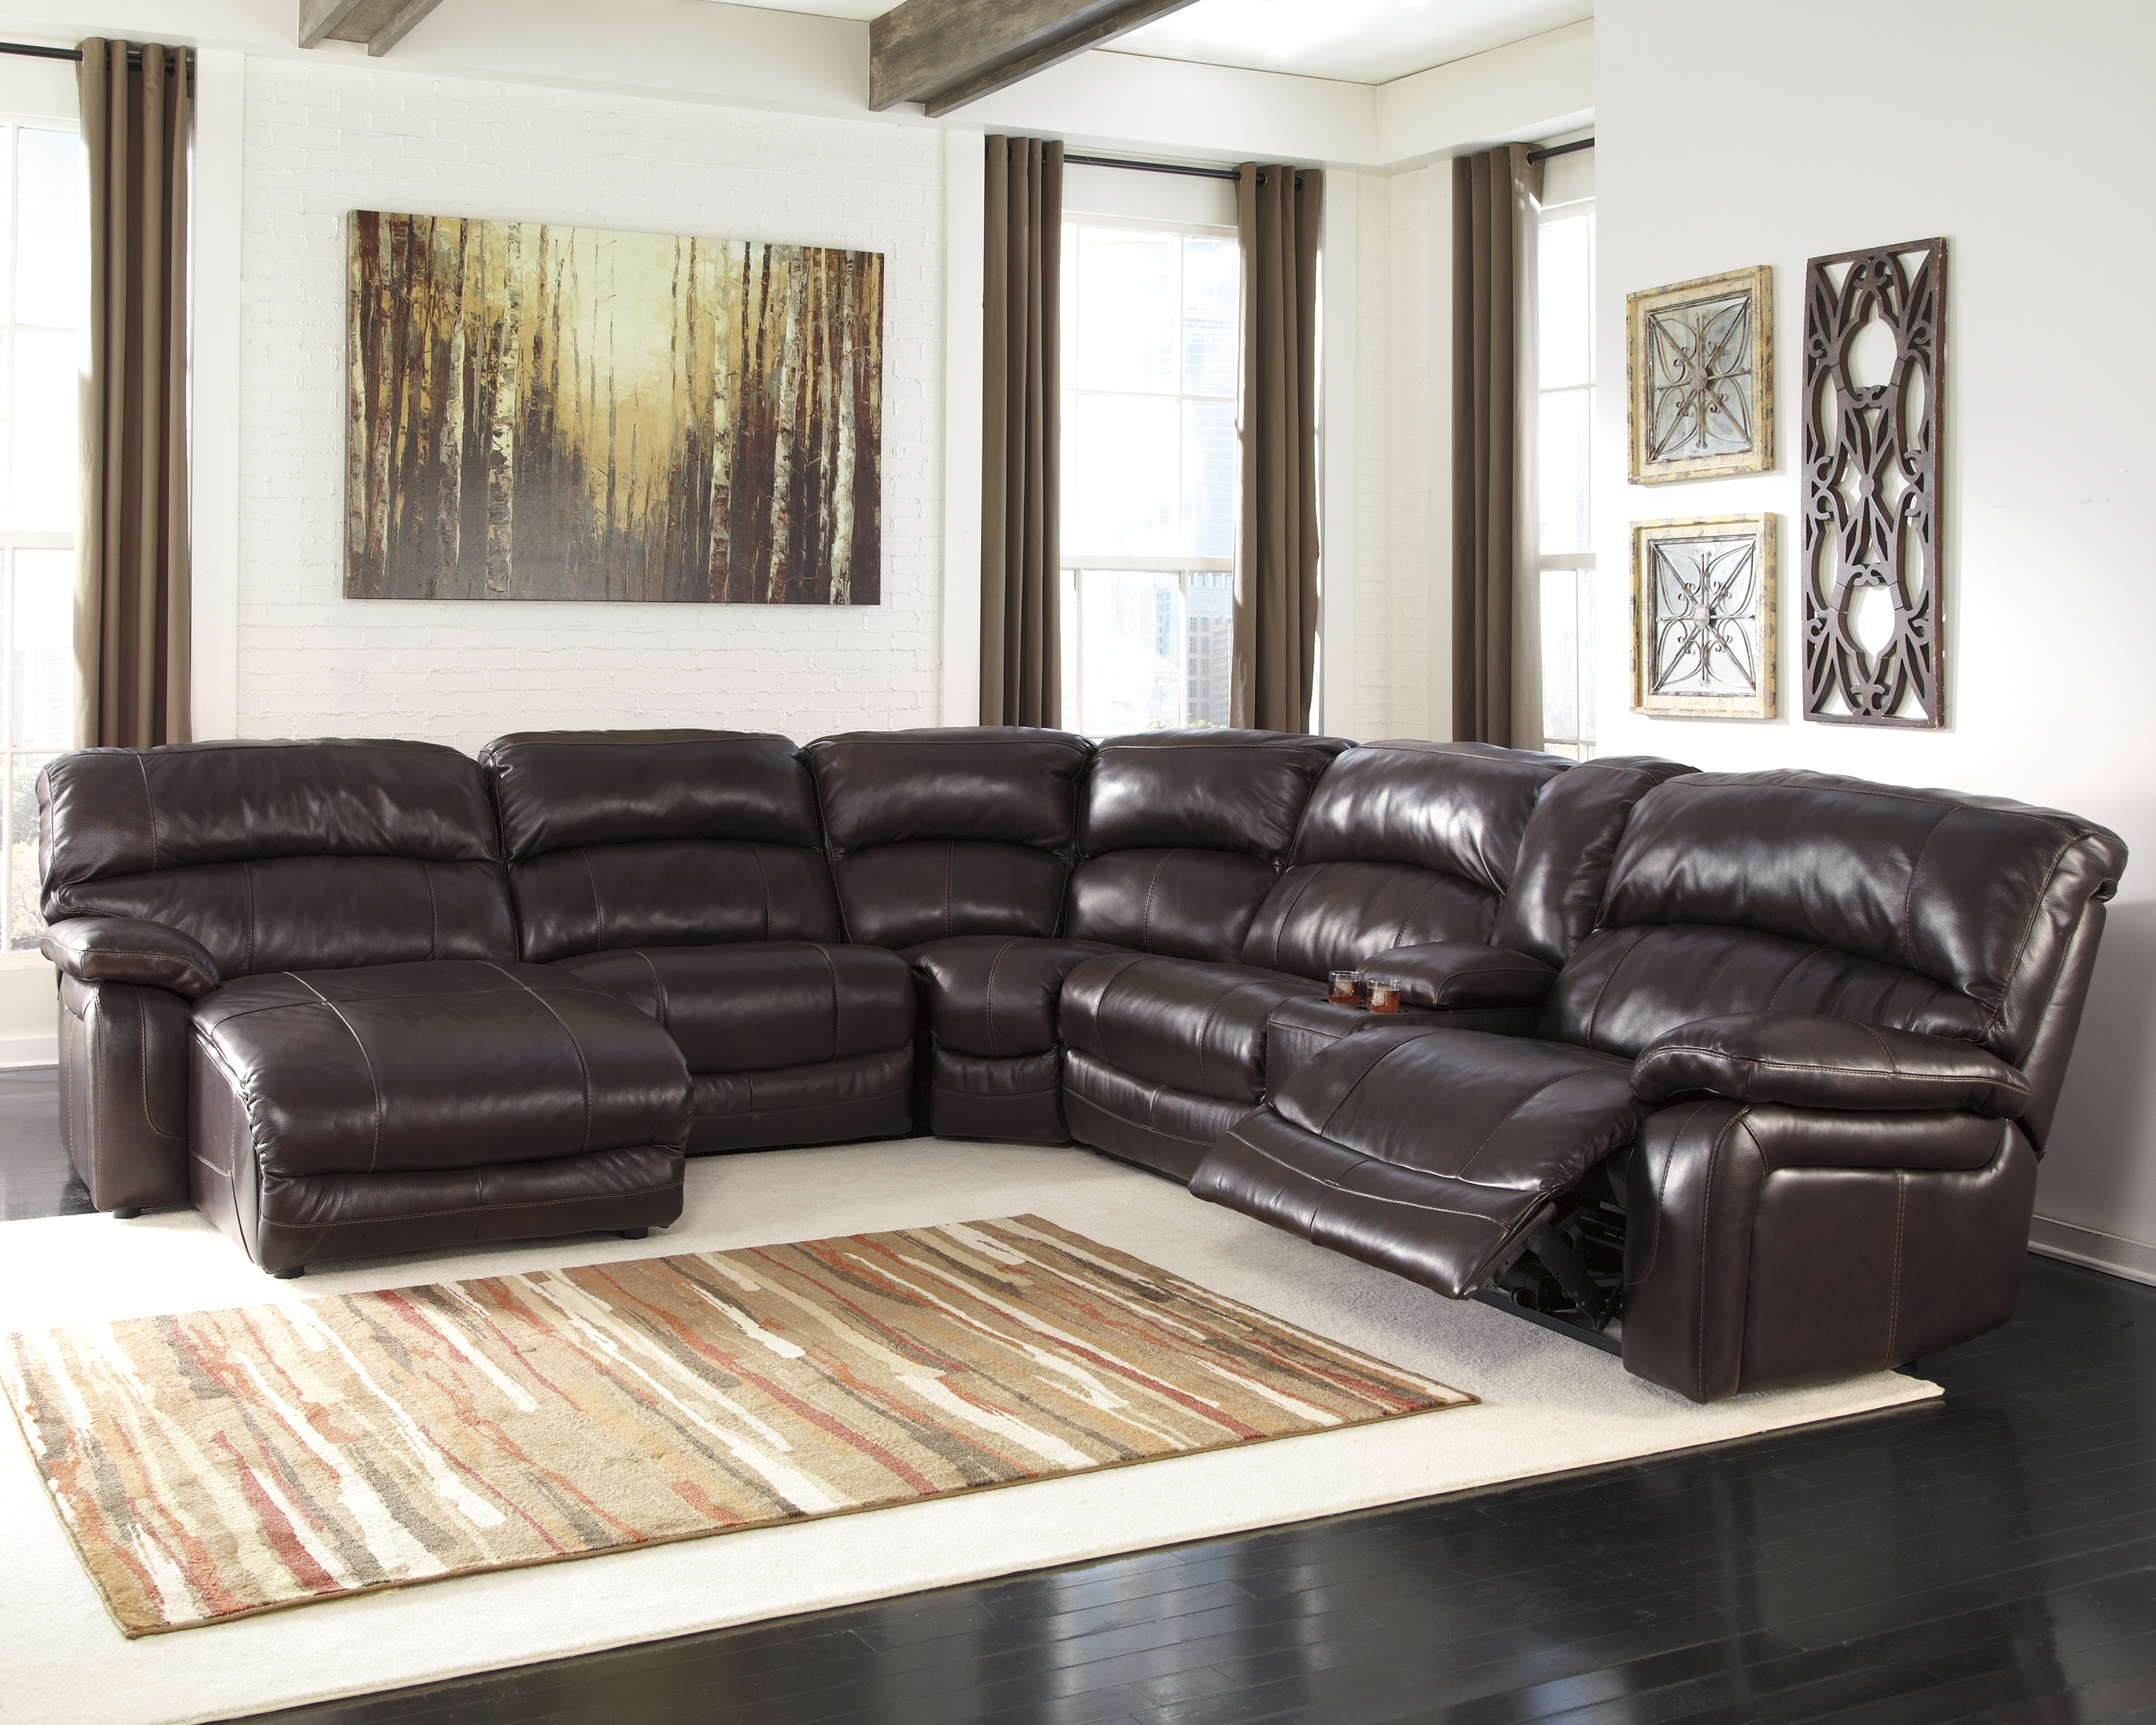 Leather Sectional Sofas With Recliners And Cup Holders Sectional Regarding Latest Chaise Recliners (View 3 of 15)